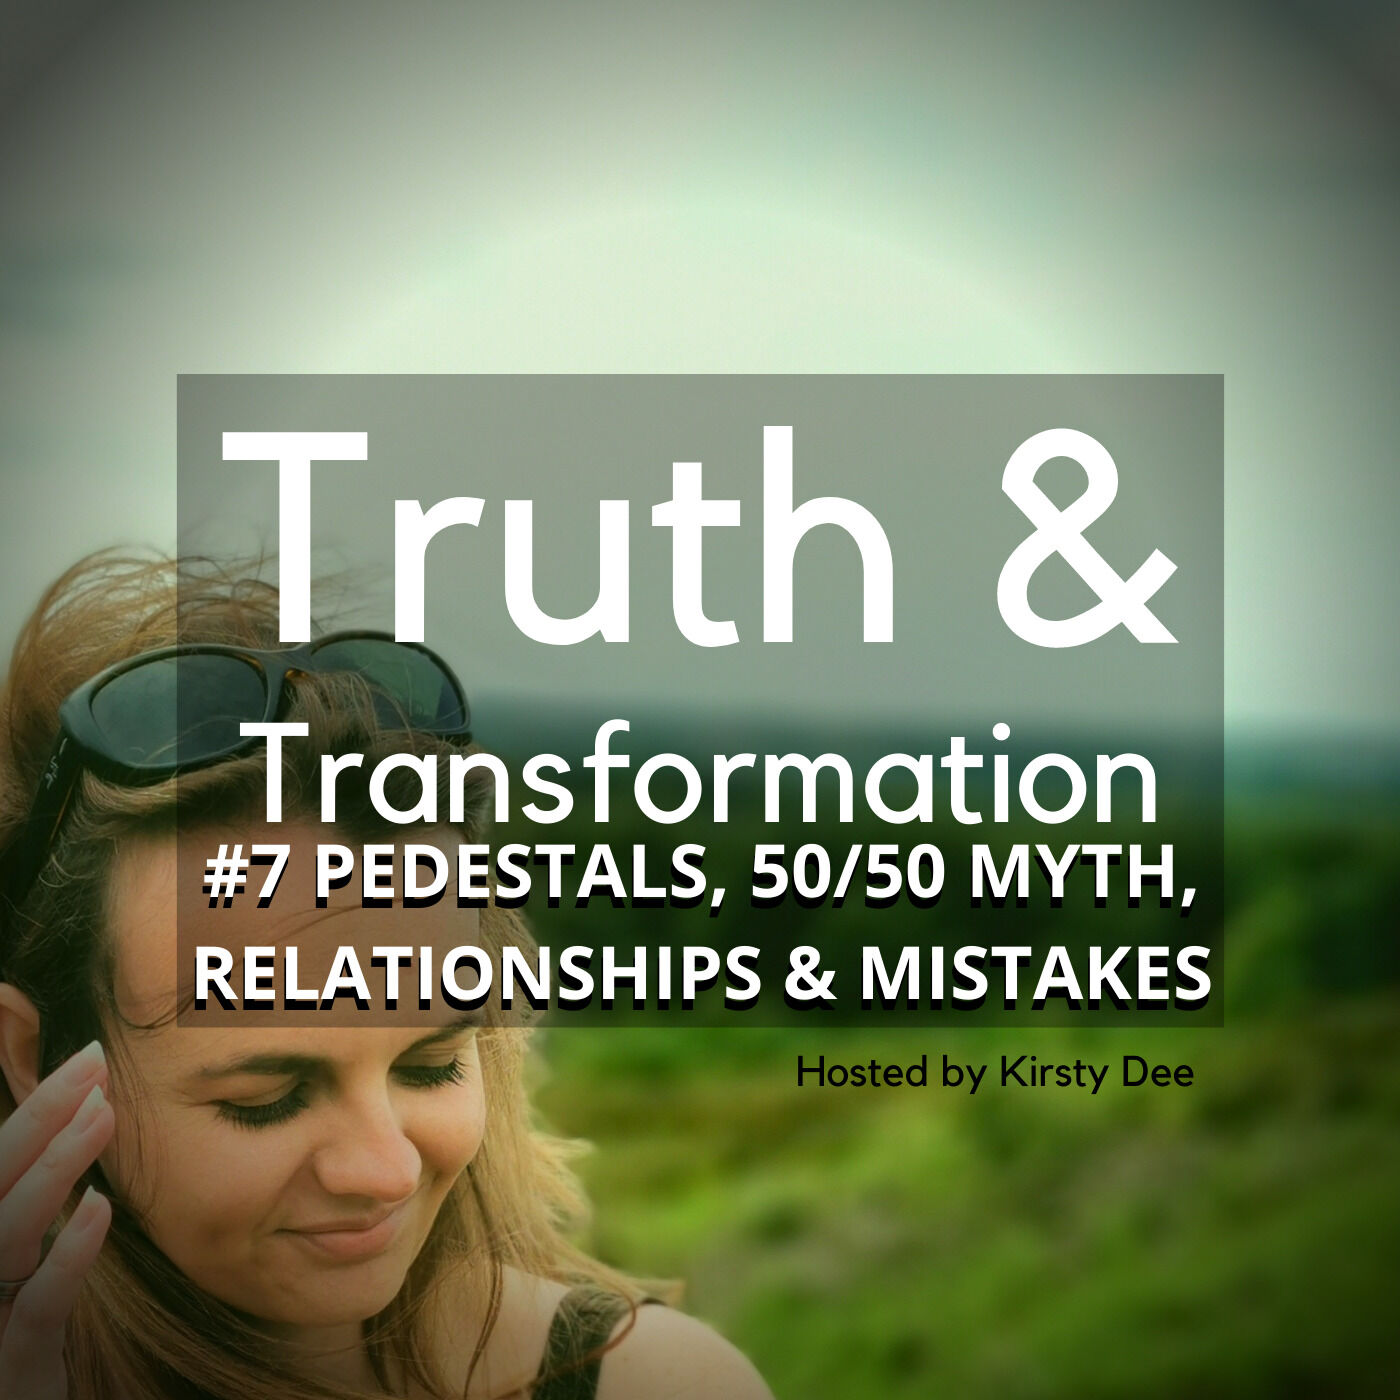 #7 PEDESTALS, 50/50 MYTH, RELATIONSHIPS & MISTAKES